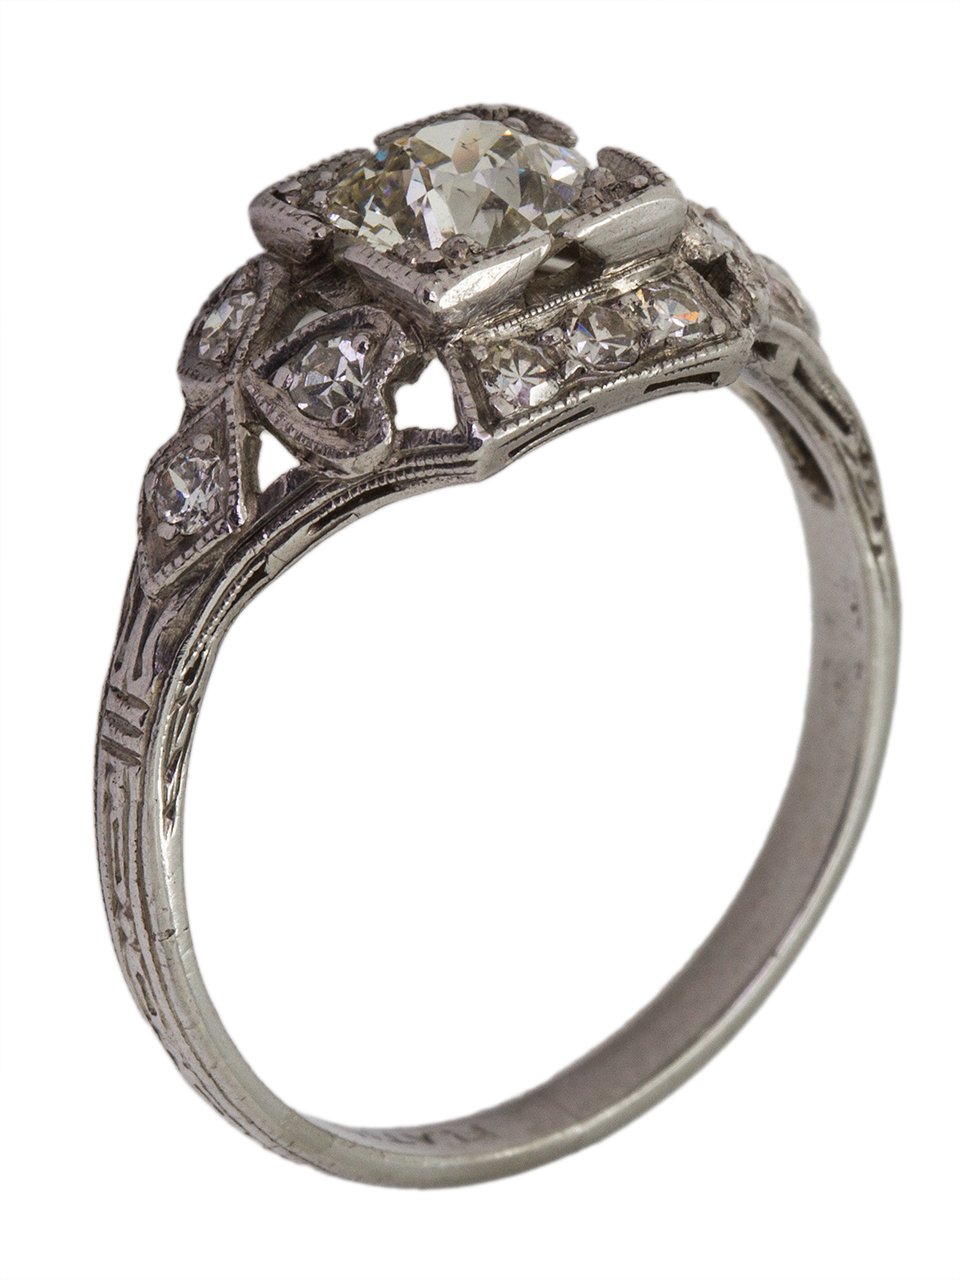 Vintage Engagement Ring Platinum 0.75ct Old European Cut I-SI1 circa 1930s